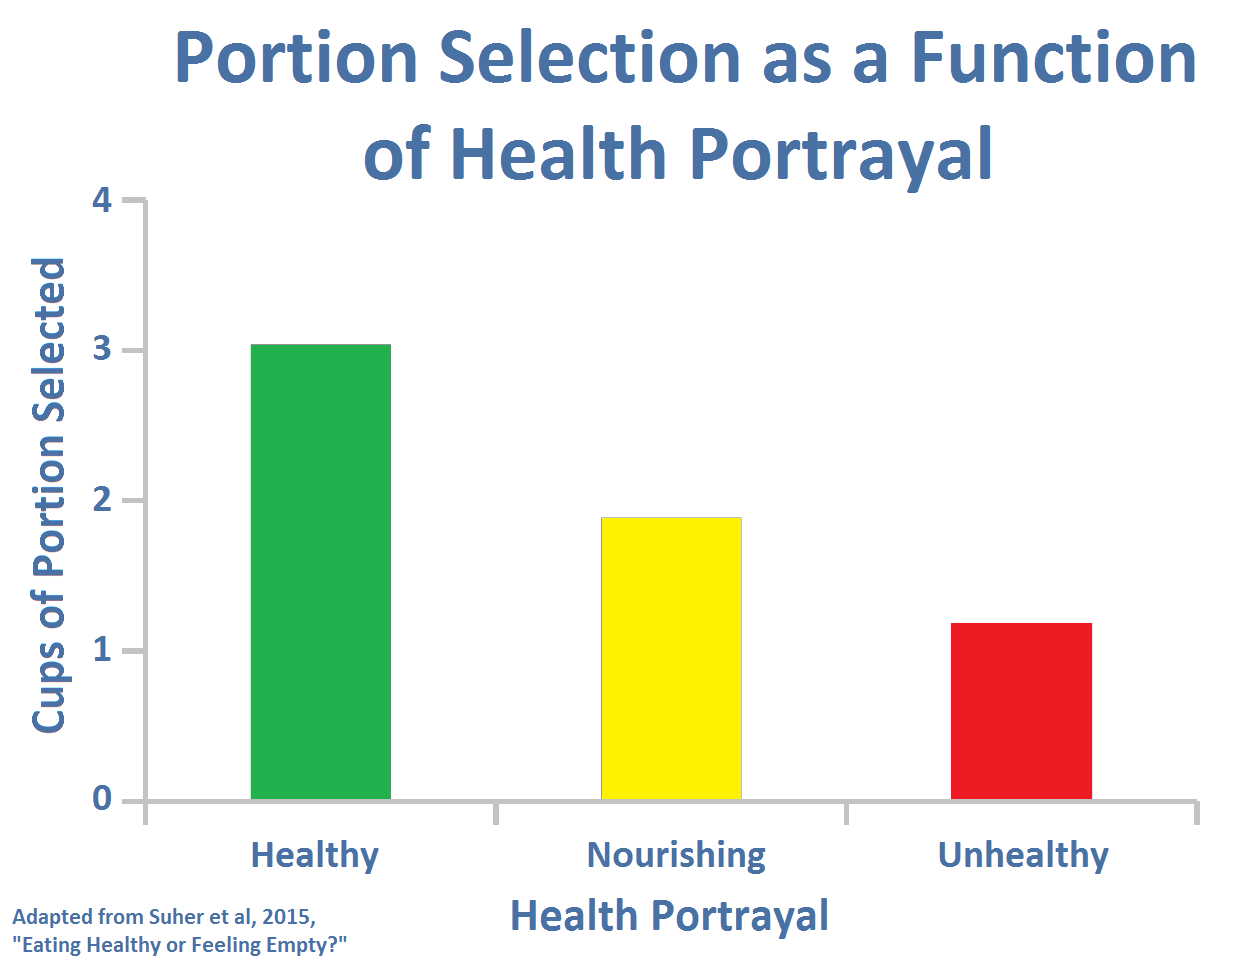 Portion Selection as a Function of Health Portrayal